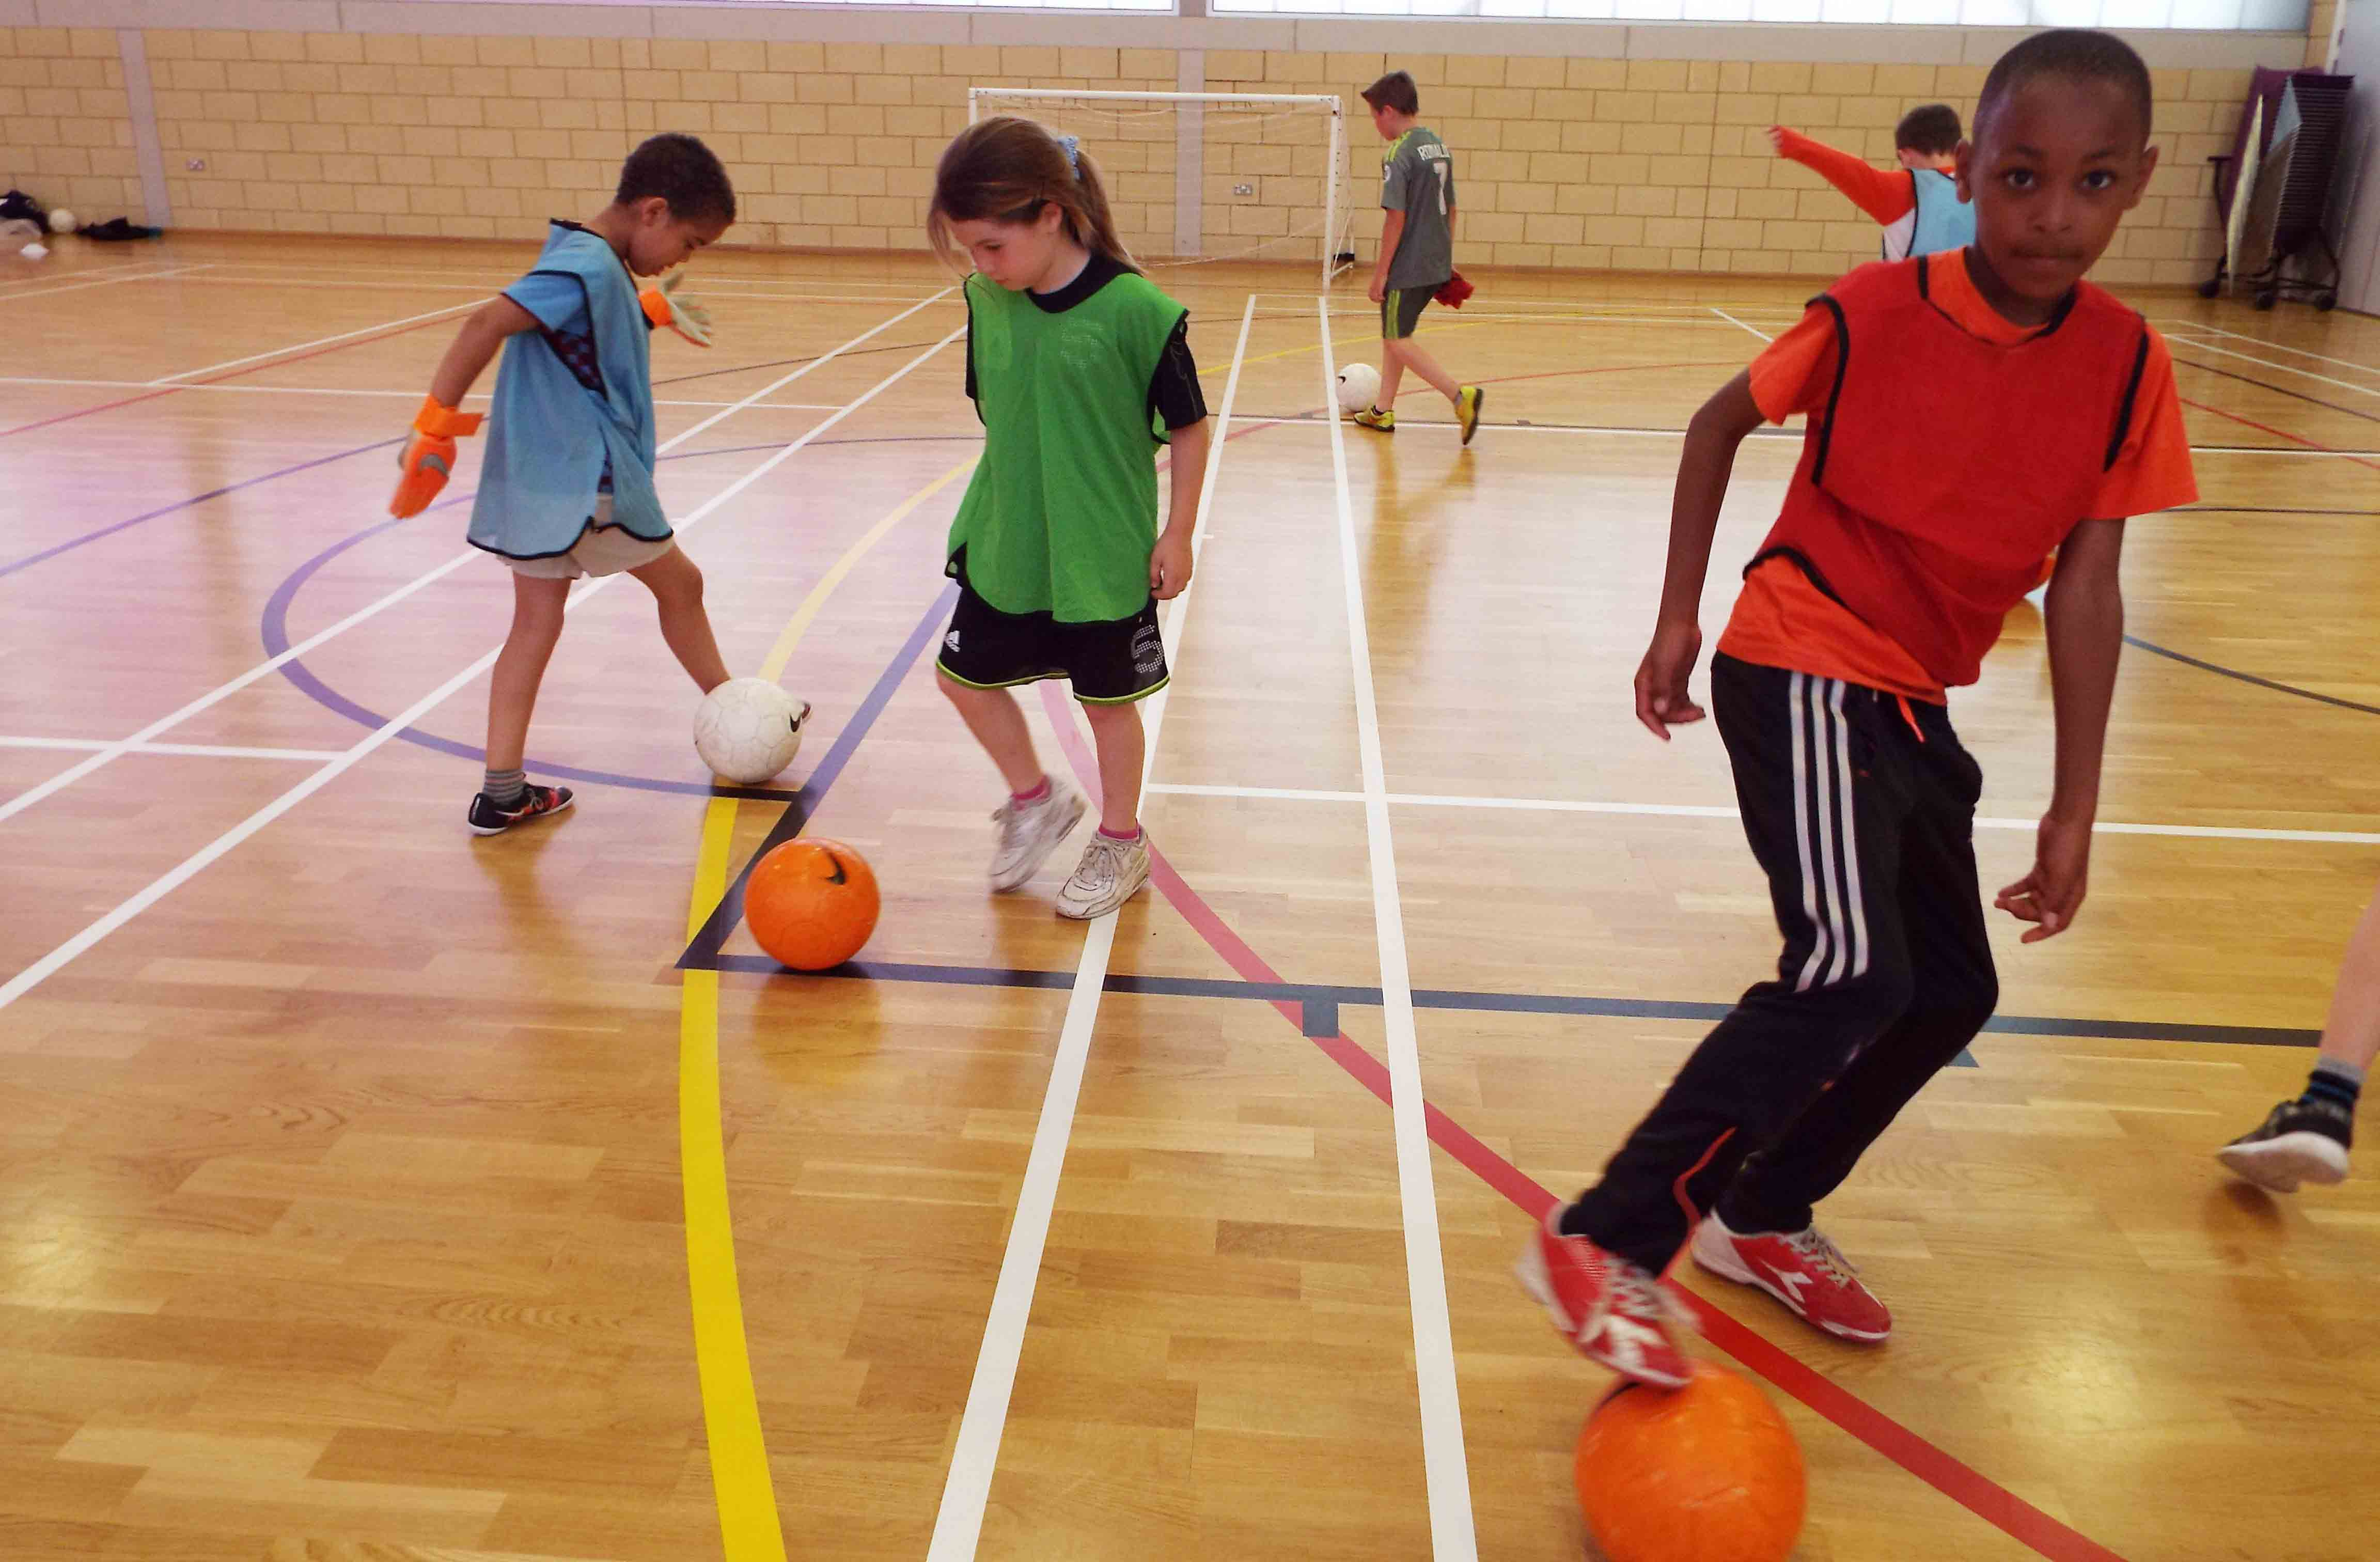 PE Activities for children